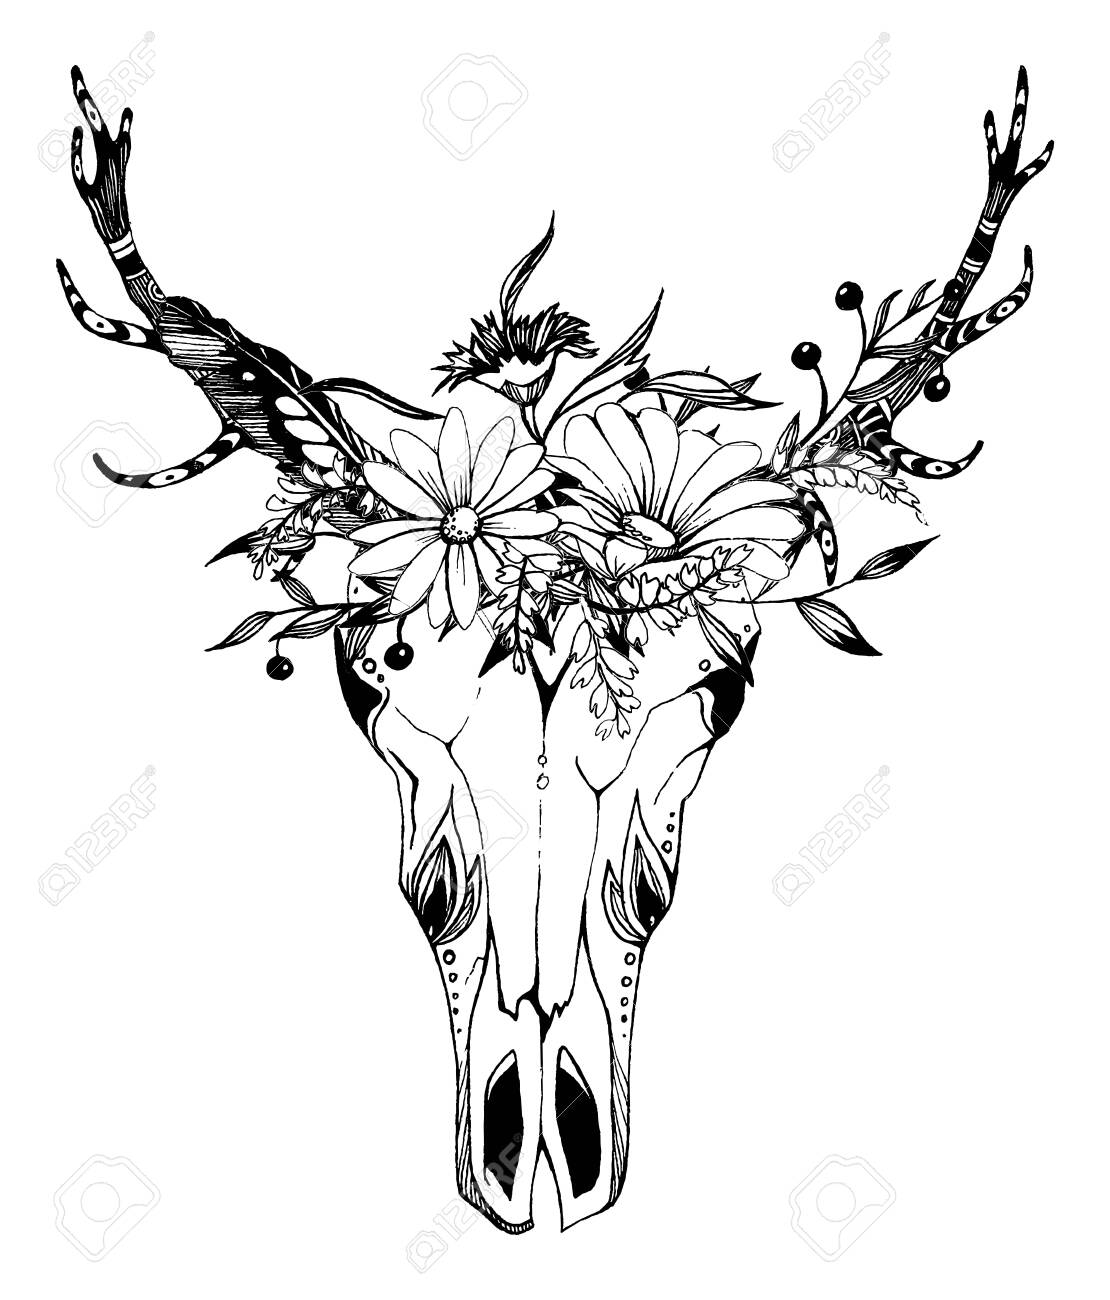 Cow, buffalo, bull skull in tribal style with flowers. Bohemian, boho vector illustration. Wild and free ethnic gypsy symbol. - 139623374